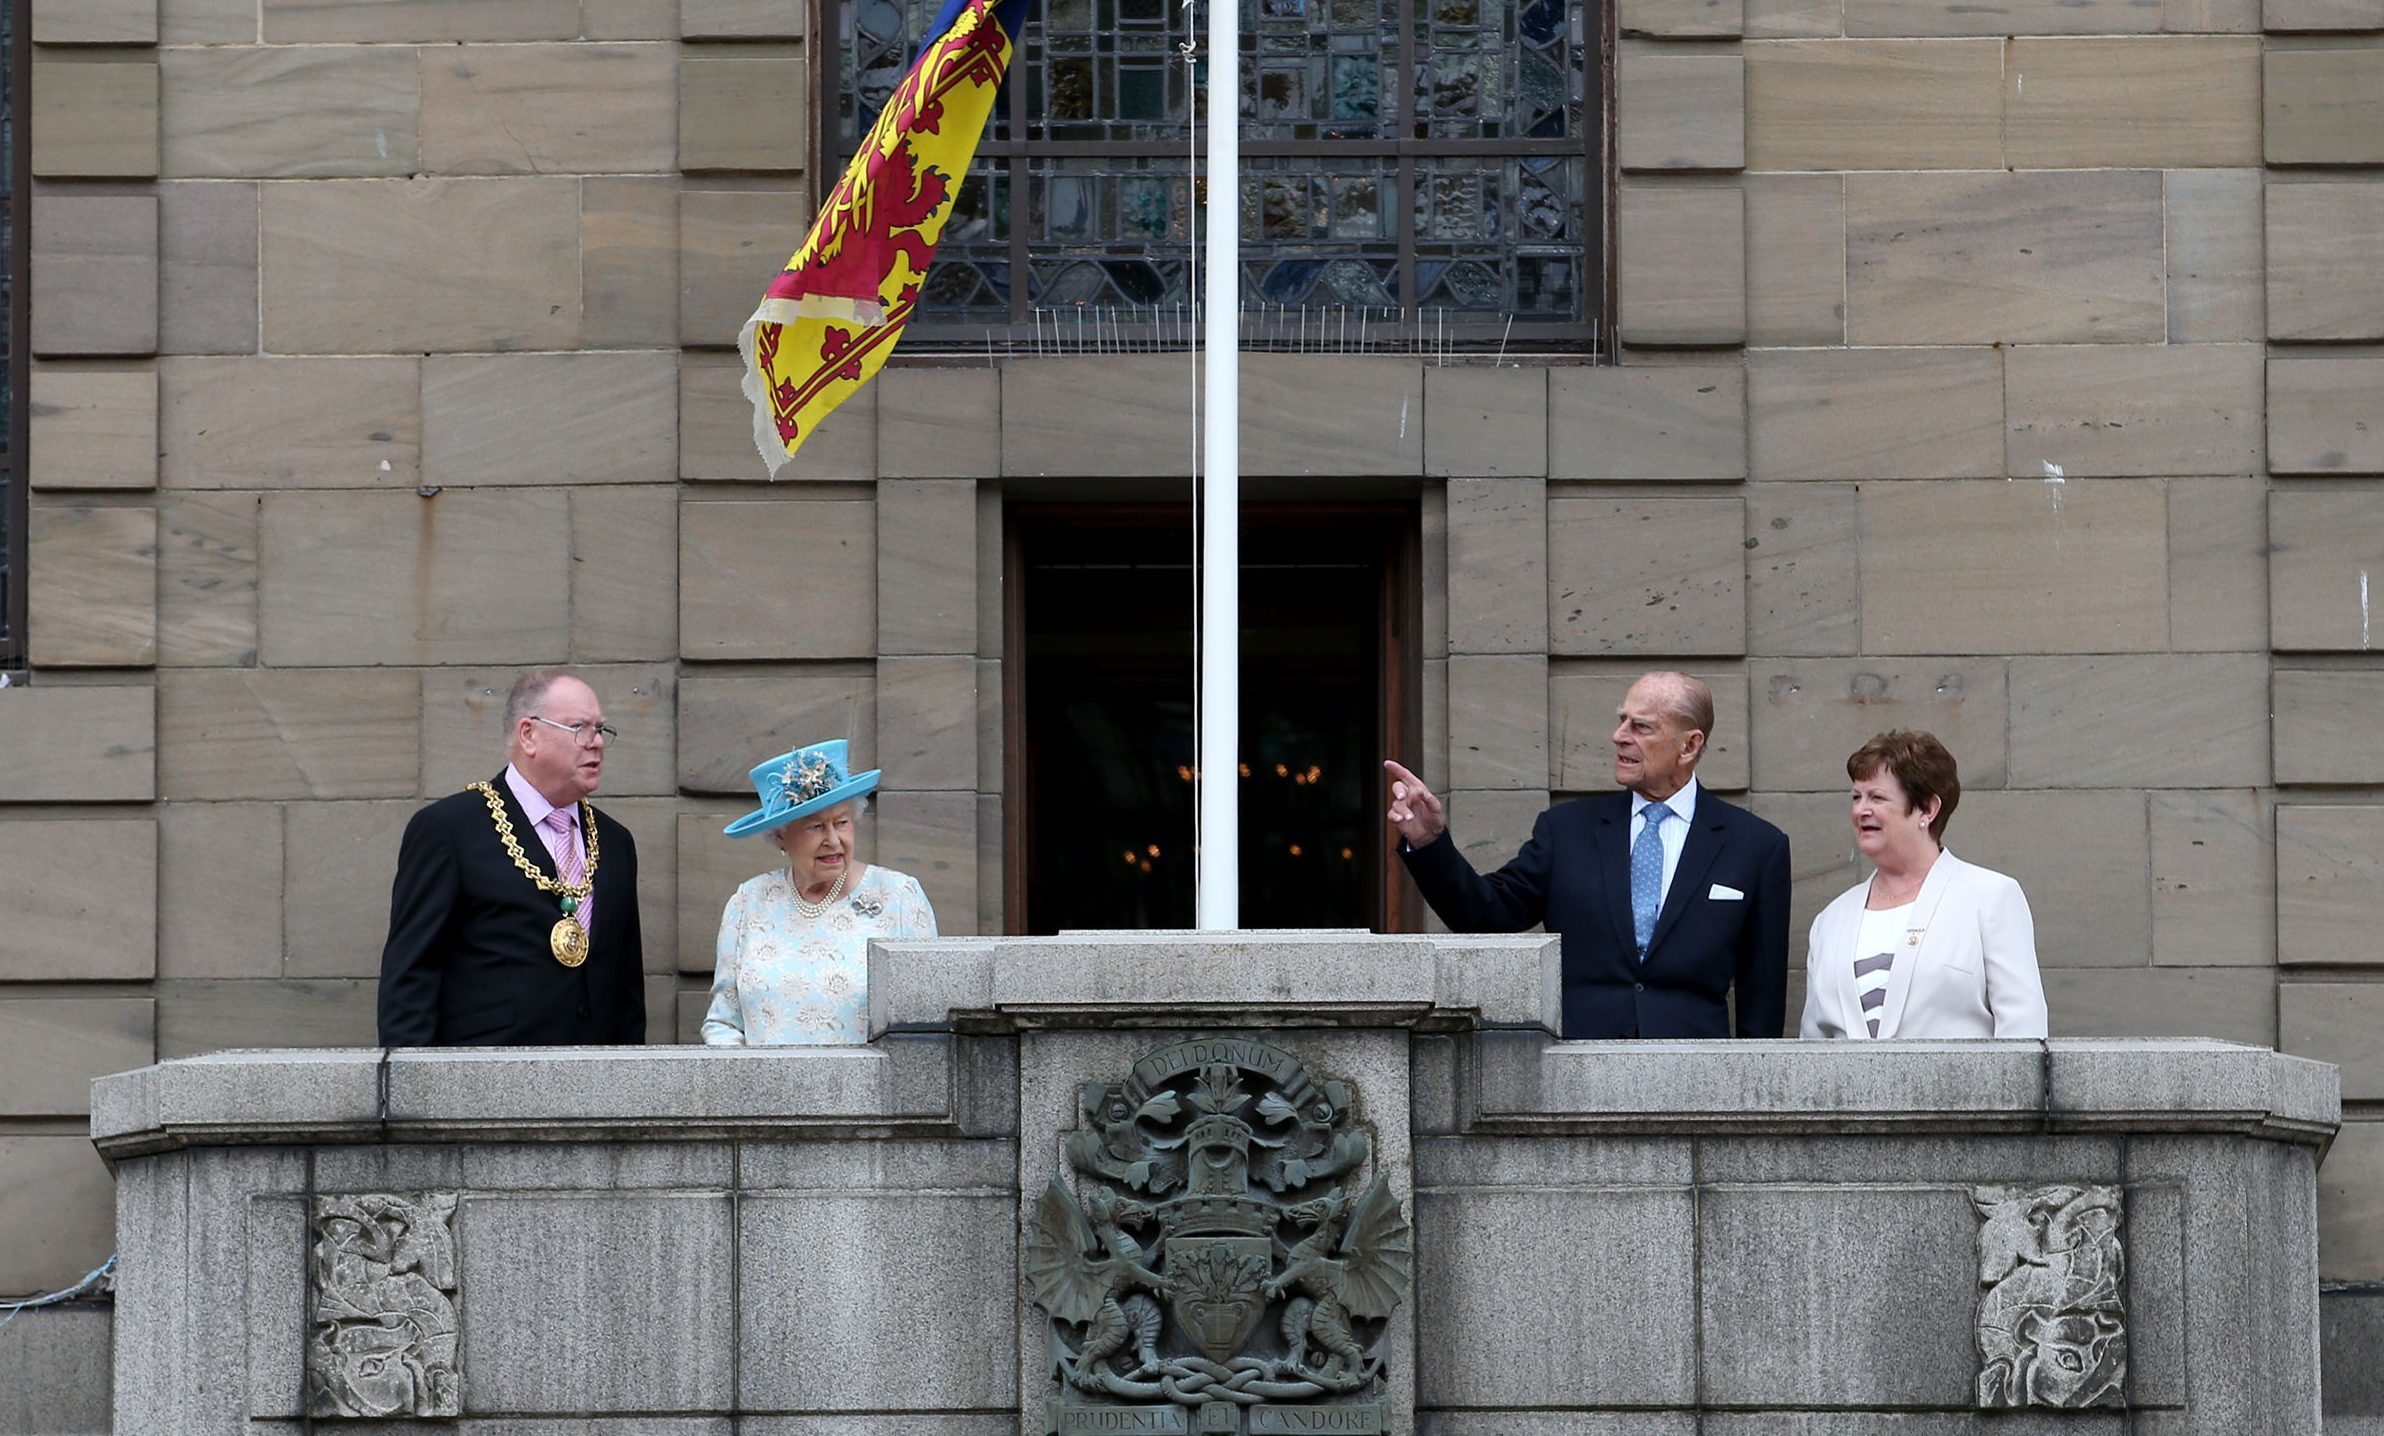 The Queen and the Duke of Edinburgh appear on the balcony of Dundee City Chambers with Lord Provost Bob Duncan (left) and his wife Brenda (right).